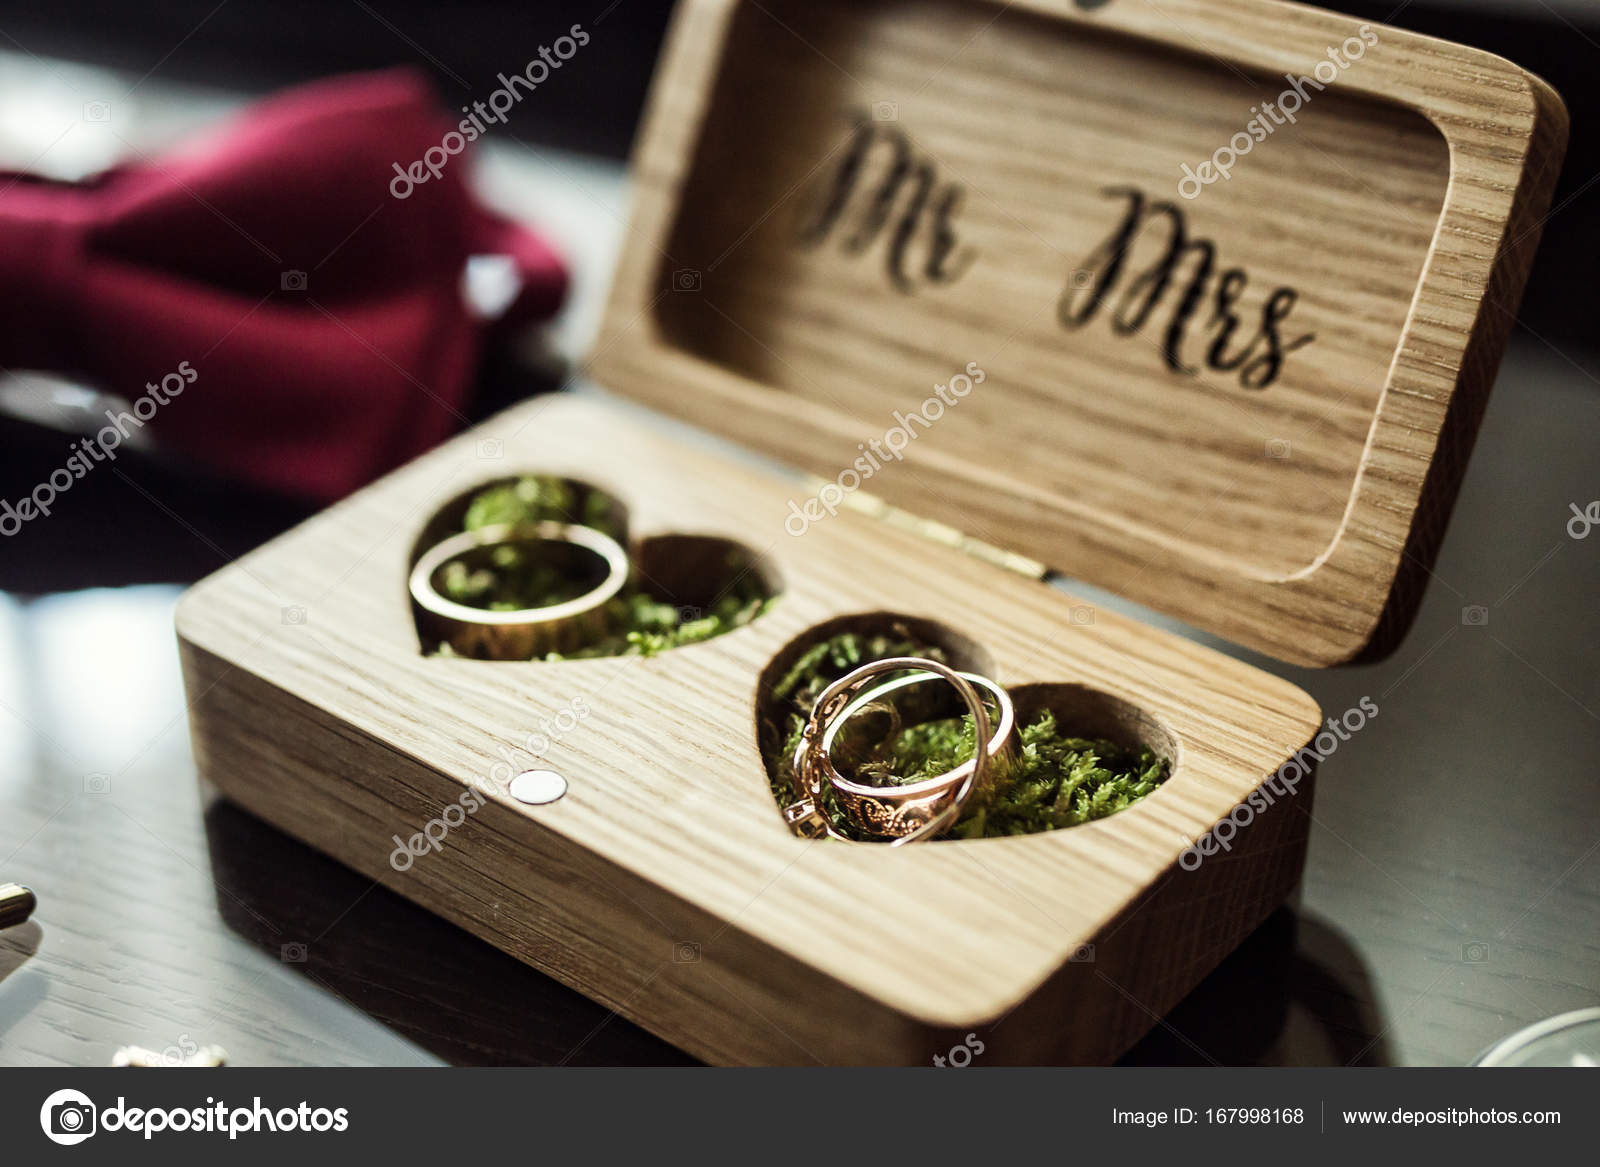 wedding rings lie in the wooden boxbridal accessories European